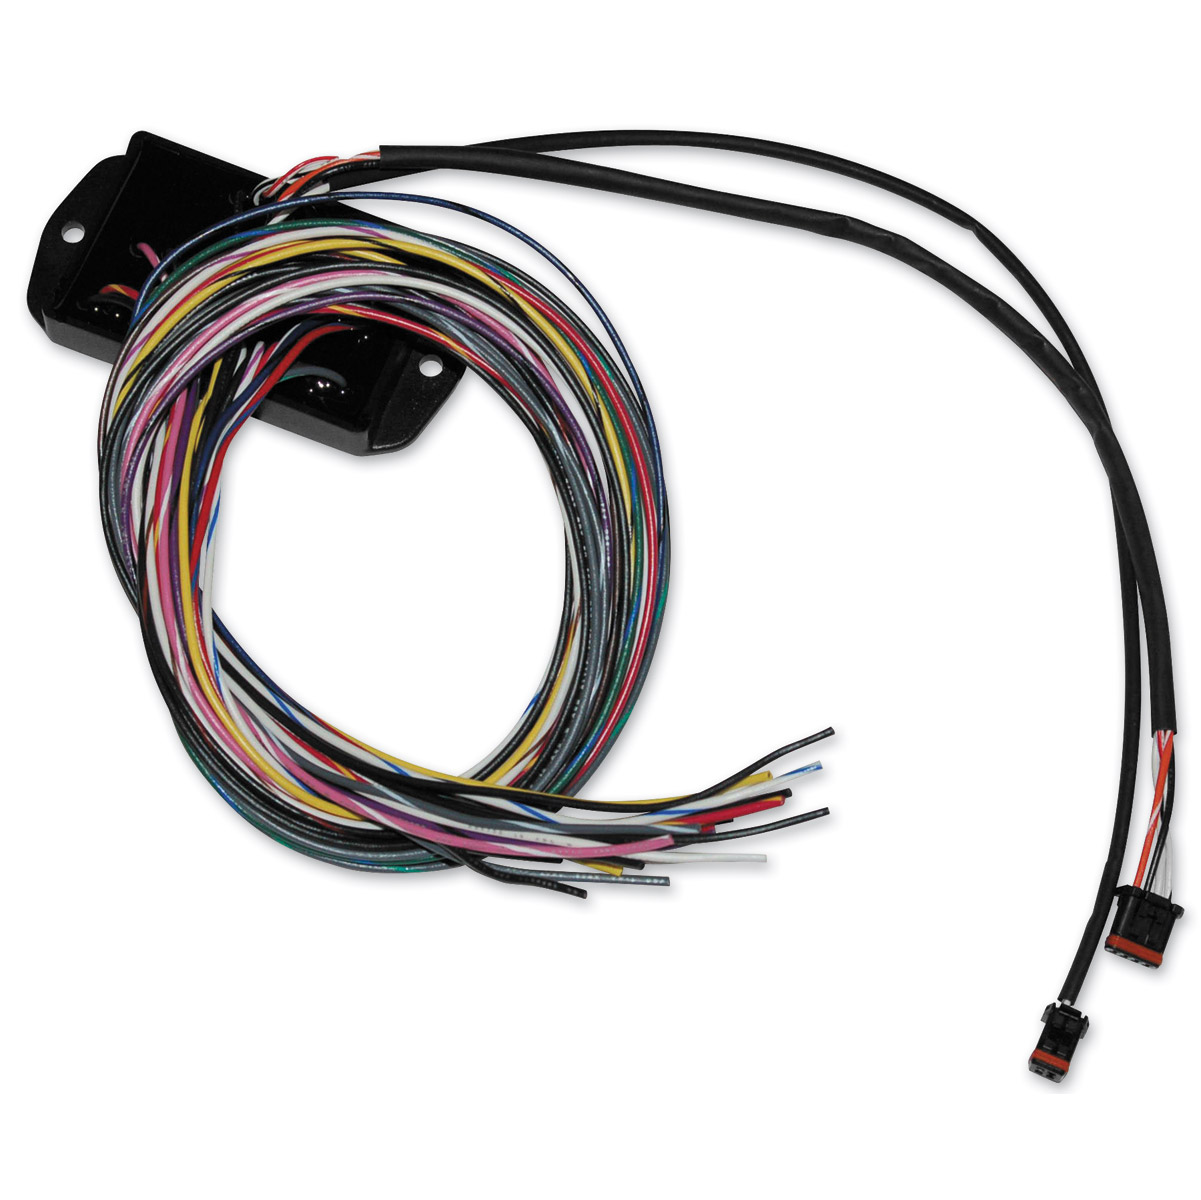 Custom Motorcycle Electrical Switches The Best 2018 Wiring Diagram Tutorial 101 Bike Exif